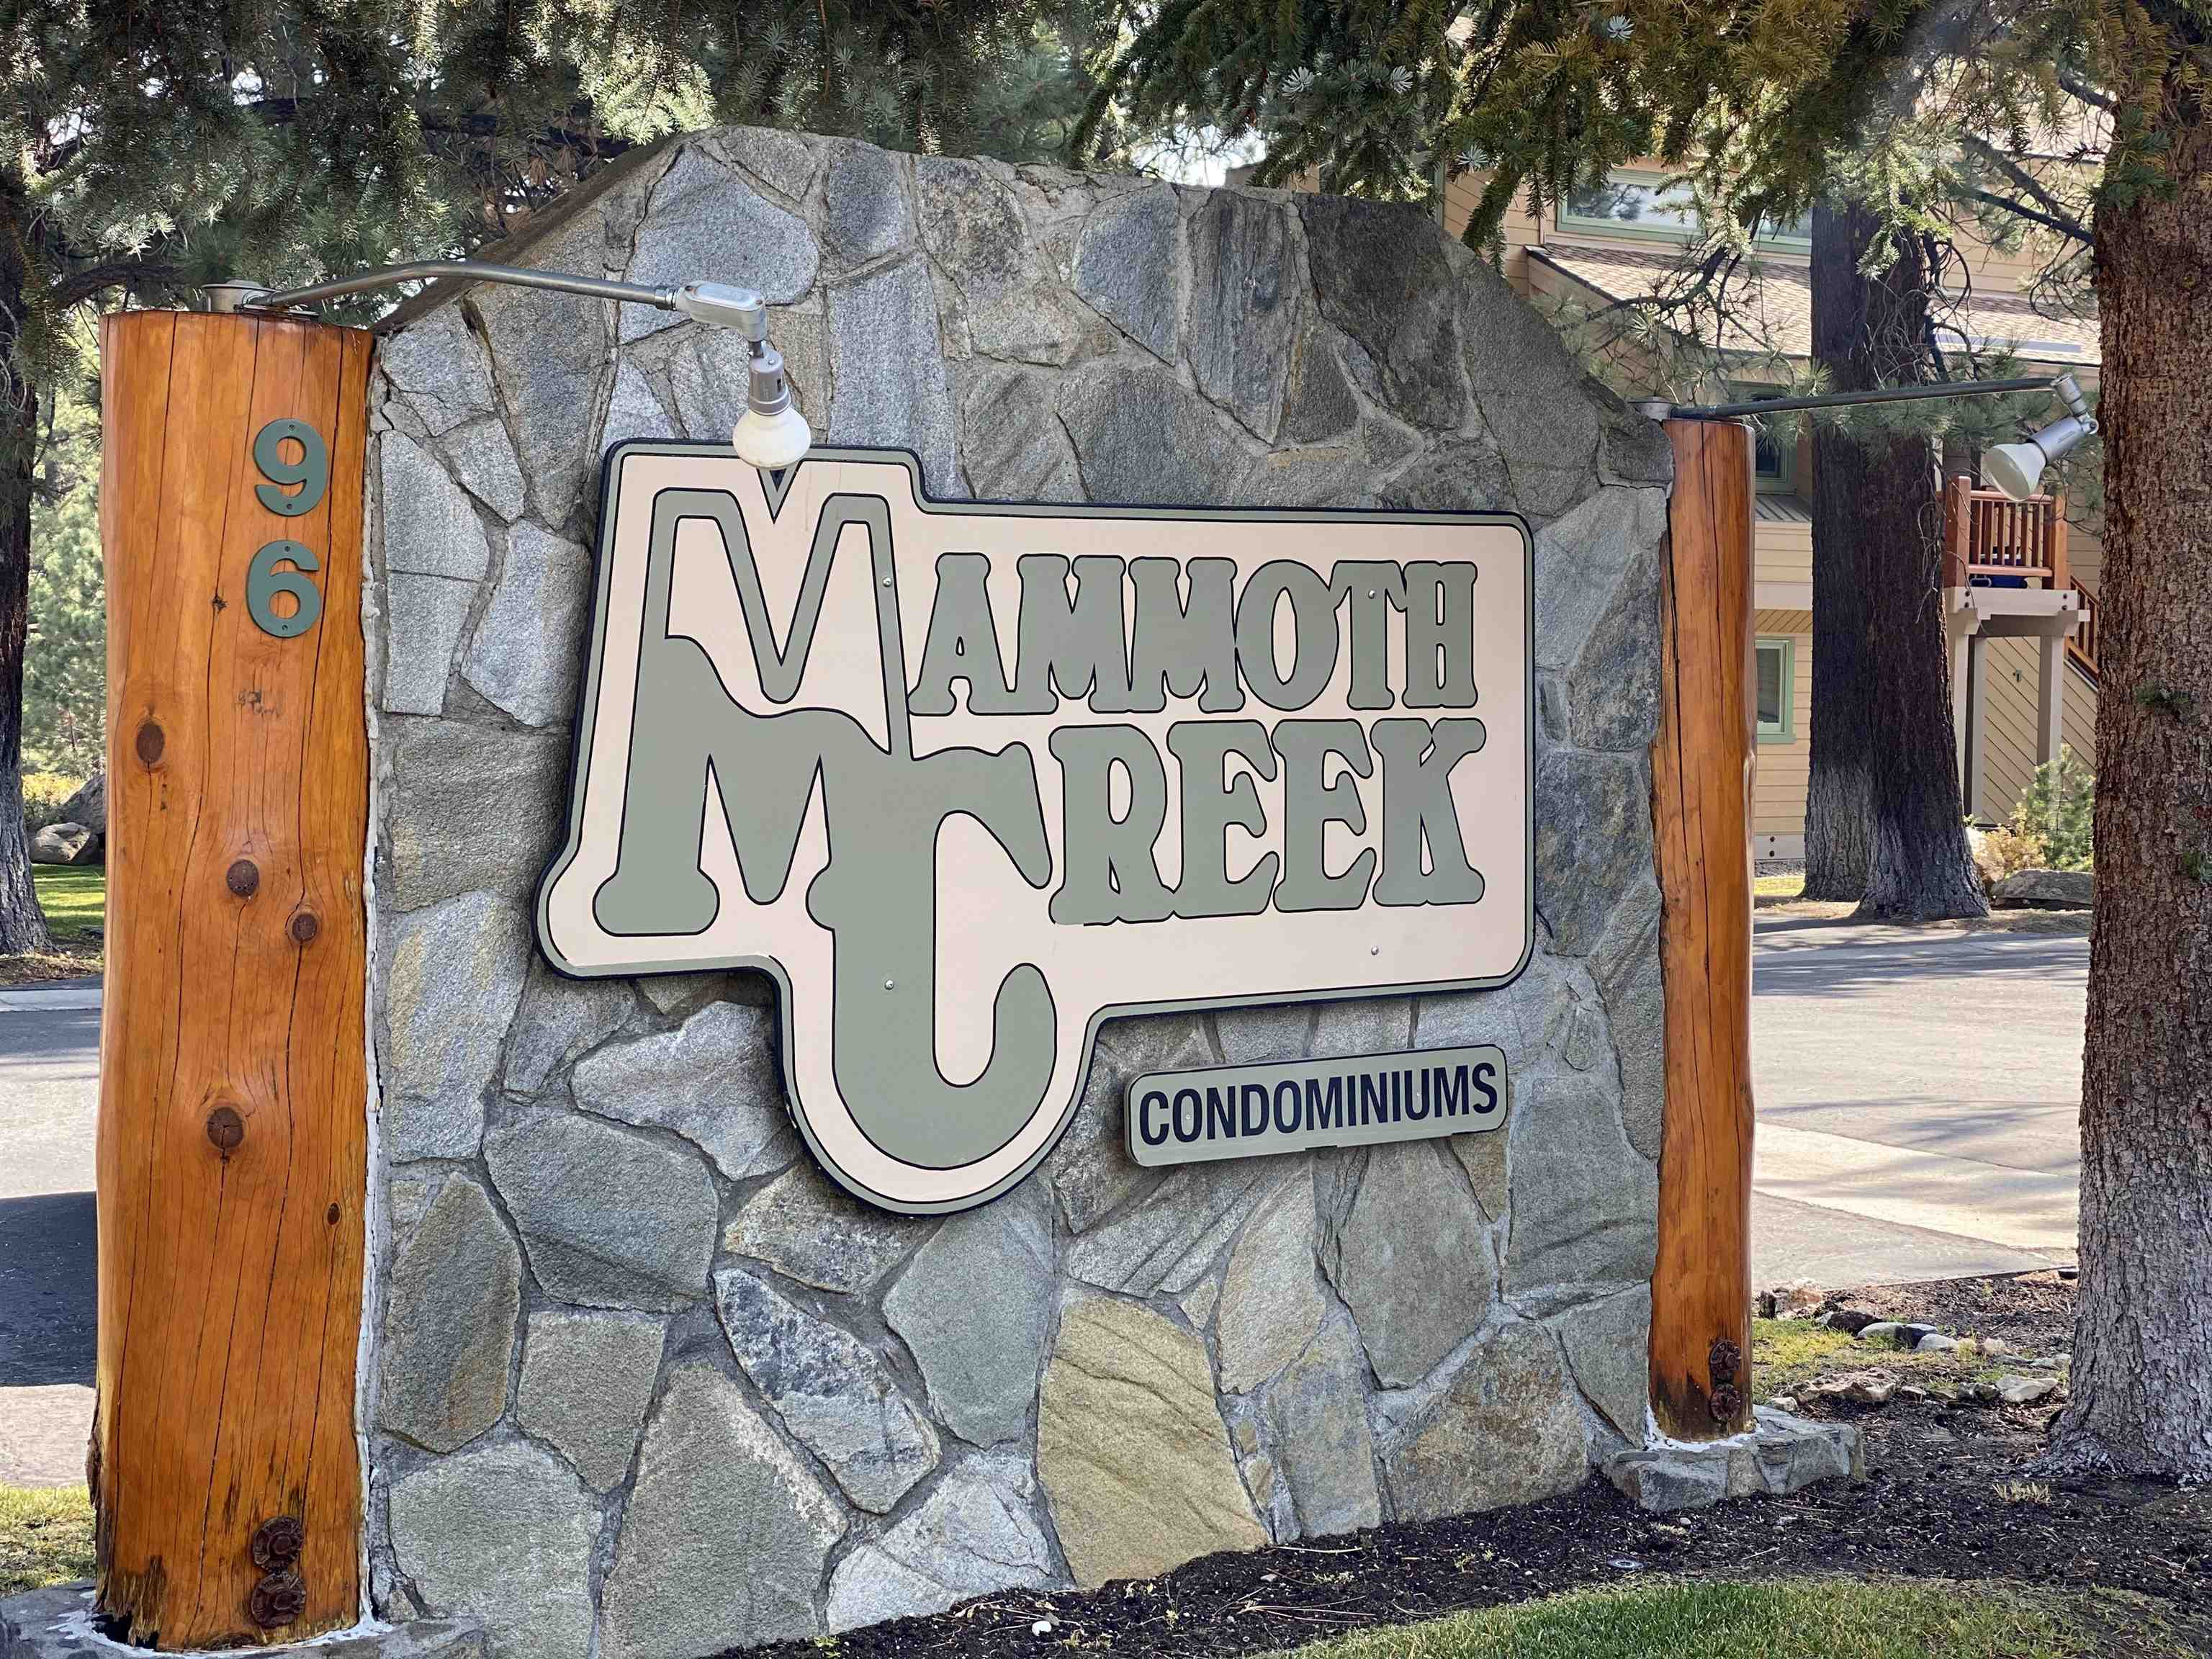 Mammoth Creek Condominiums is perfectly situated in front of Mammoth Creek with views of the Sherwin Mountains, Mammoth Mountain, Mammoth Rock, Snowcreek driving range and vast open land of nature. Imagine yourself relaxing in this spacious 2 level Mammoth Creek 2 Bedroom with a Loft and 2 full bathrooms. Curl up in the living room next to the dramatic ledger rock wood burning fireplace with vaulted ceilings and an open floor plan. A well situated kitchen with engineered simulated wood flooring throughout the main level great room.  Primary bedroom is located on the Main level and the 2nd bedroom is located on the upper level with a full bathroom.  The washer and dryer are included and located on the 2nd level. Mammoth Creek Association has a tennis court, pool, 2 spa's, sauna, bike racks and is a beautifully landscaped and a well maintained complex. Walk with your fishing pole to the creek, the park and soon to be ice-skating rink. Walk to the shuttle stop and adjacent to the Town bike path. Close to Snowcreek golf course, restaurants and shopping. A perfect location for all!